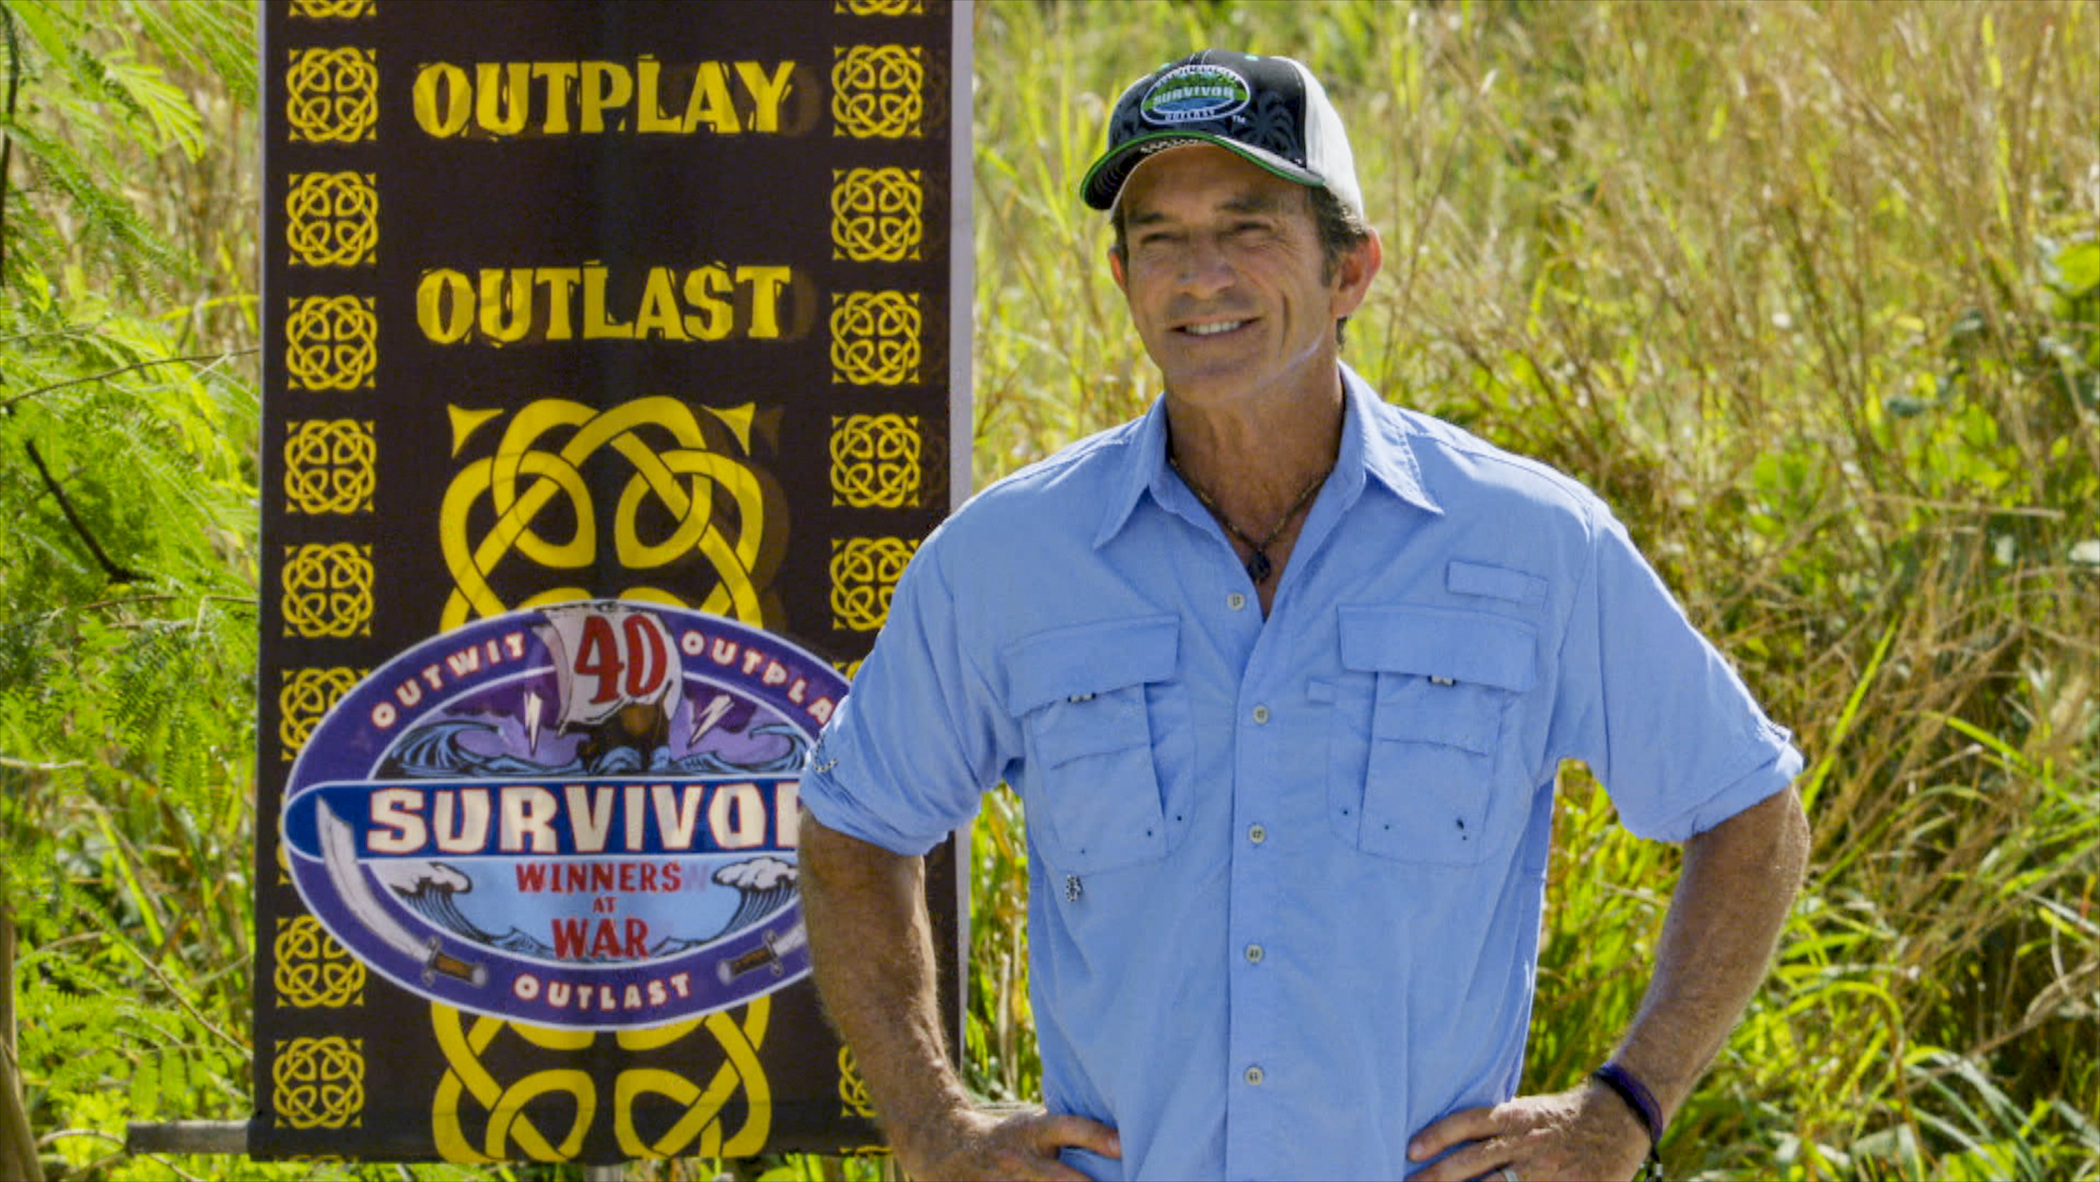 Jeff Probst on 'Survivor' - the 'Survivor 41' host introduced a new weekly game for viewers